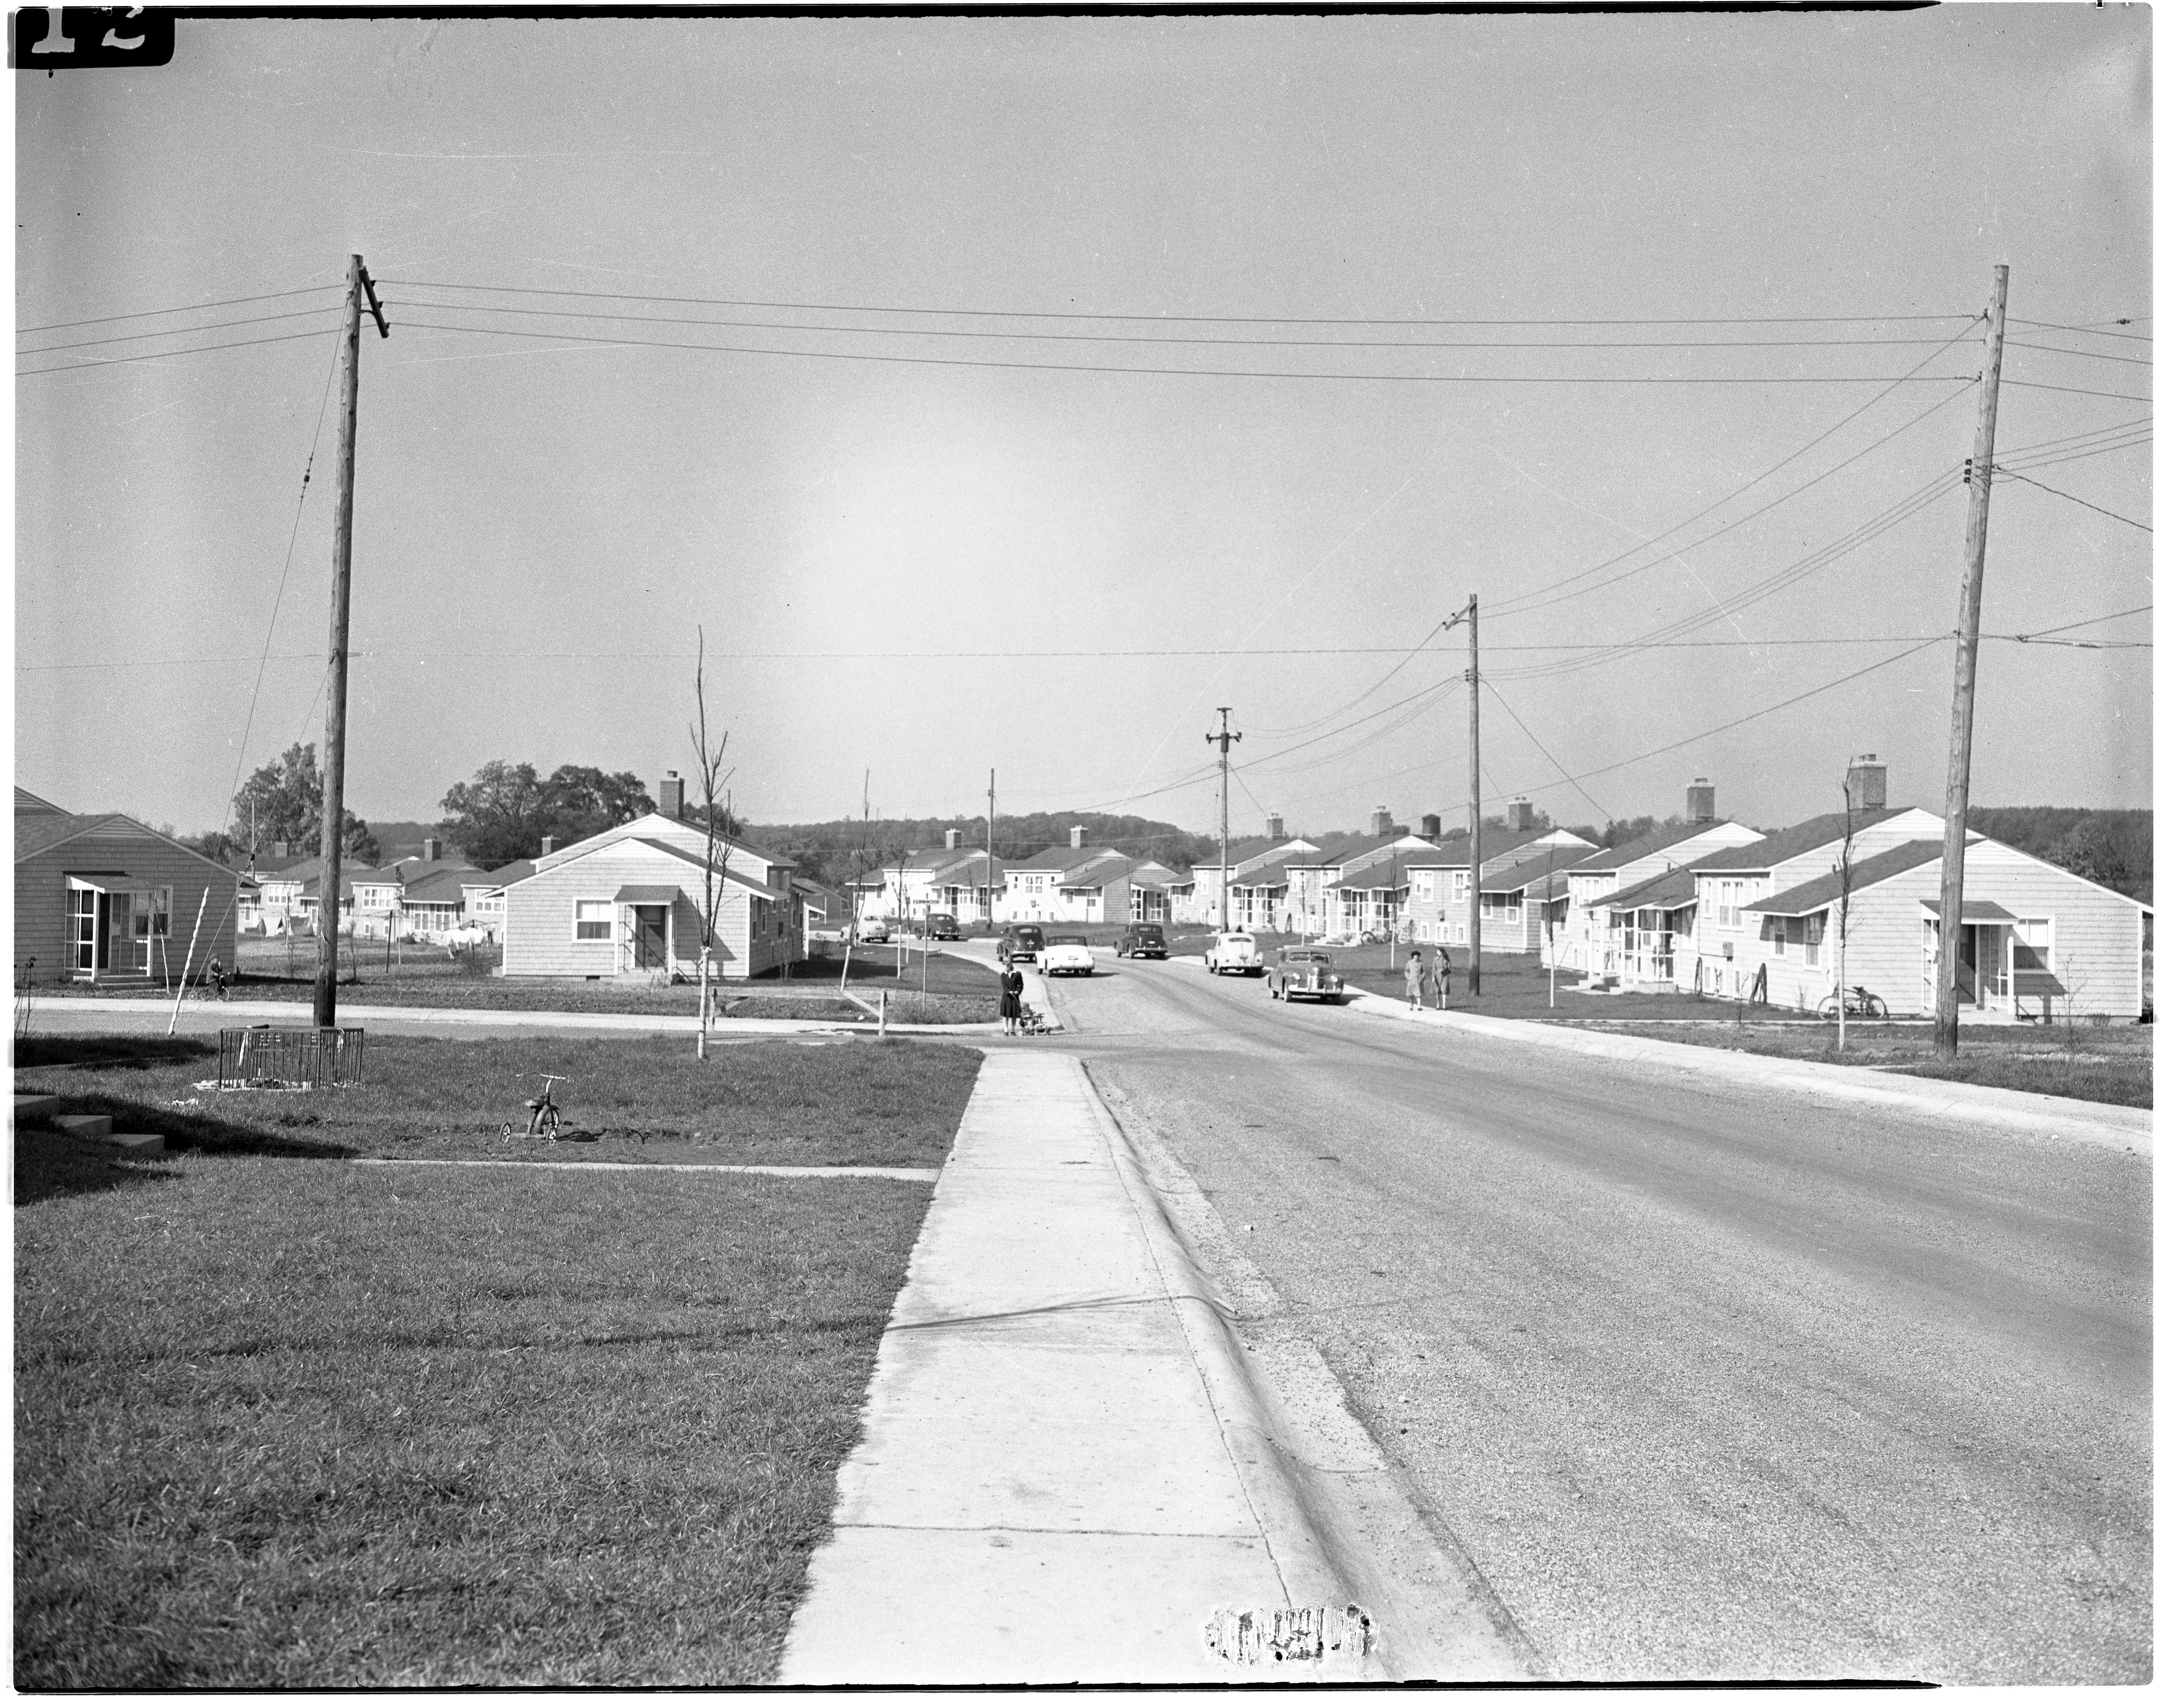 View of Pittsfield Village, October 1944 image